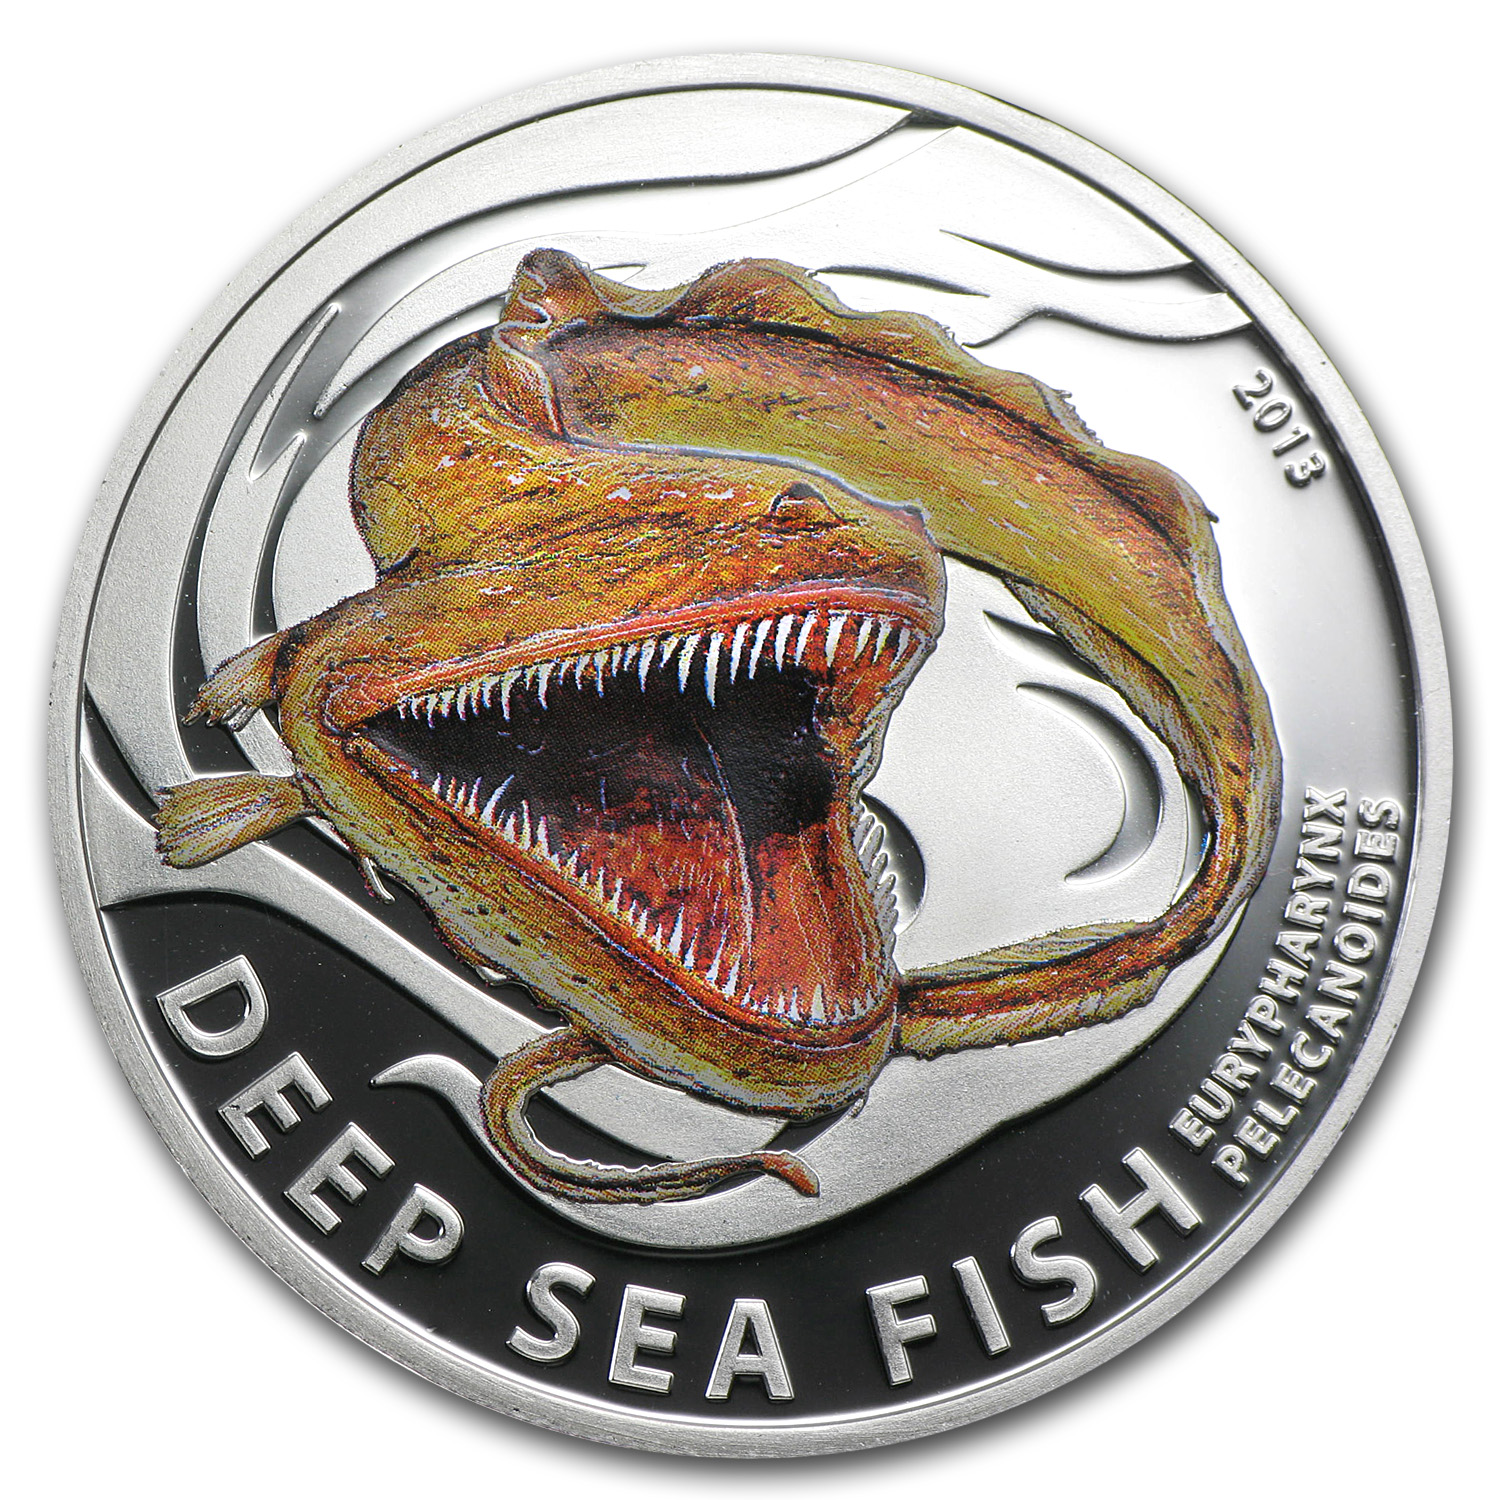 2013 Pitcairn Islands Silver Deep Sea Fish Pelican Eel